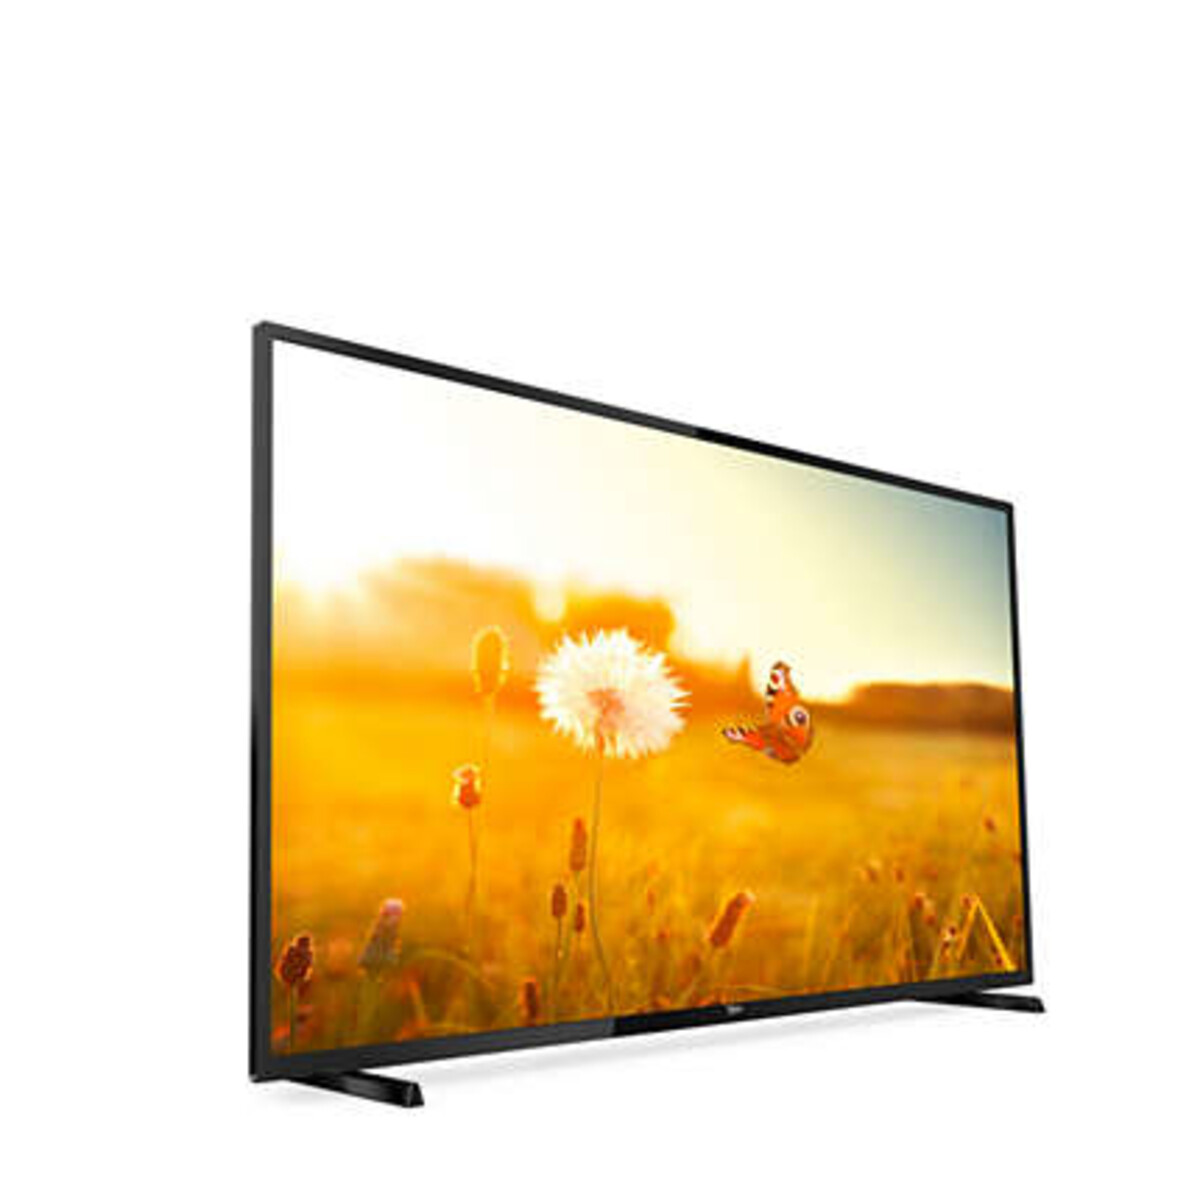 8718863021910-philips-easysuite-32hfl3014-12-tv-81-3-cm-32-hd-nero